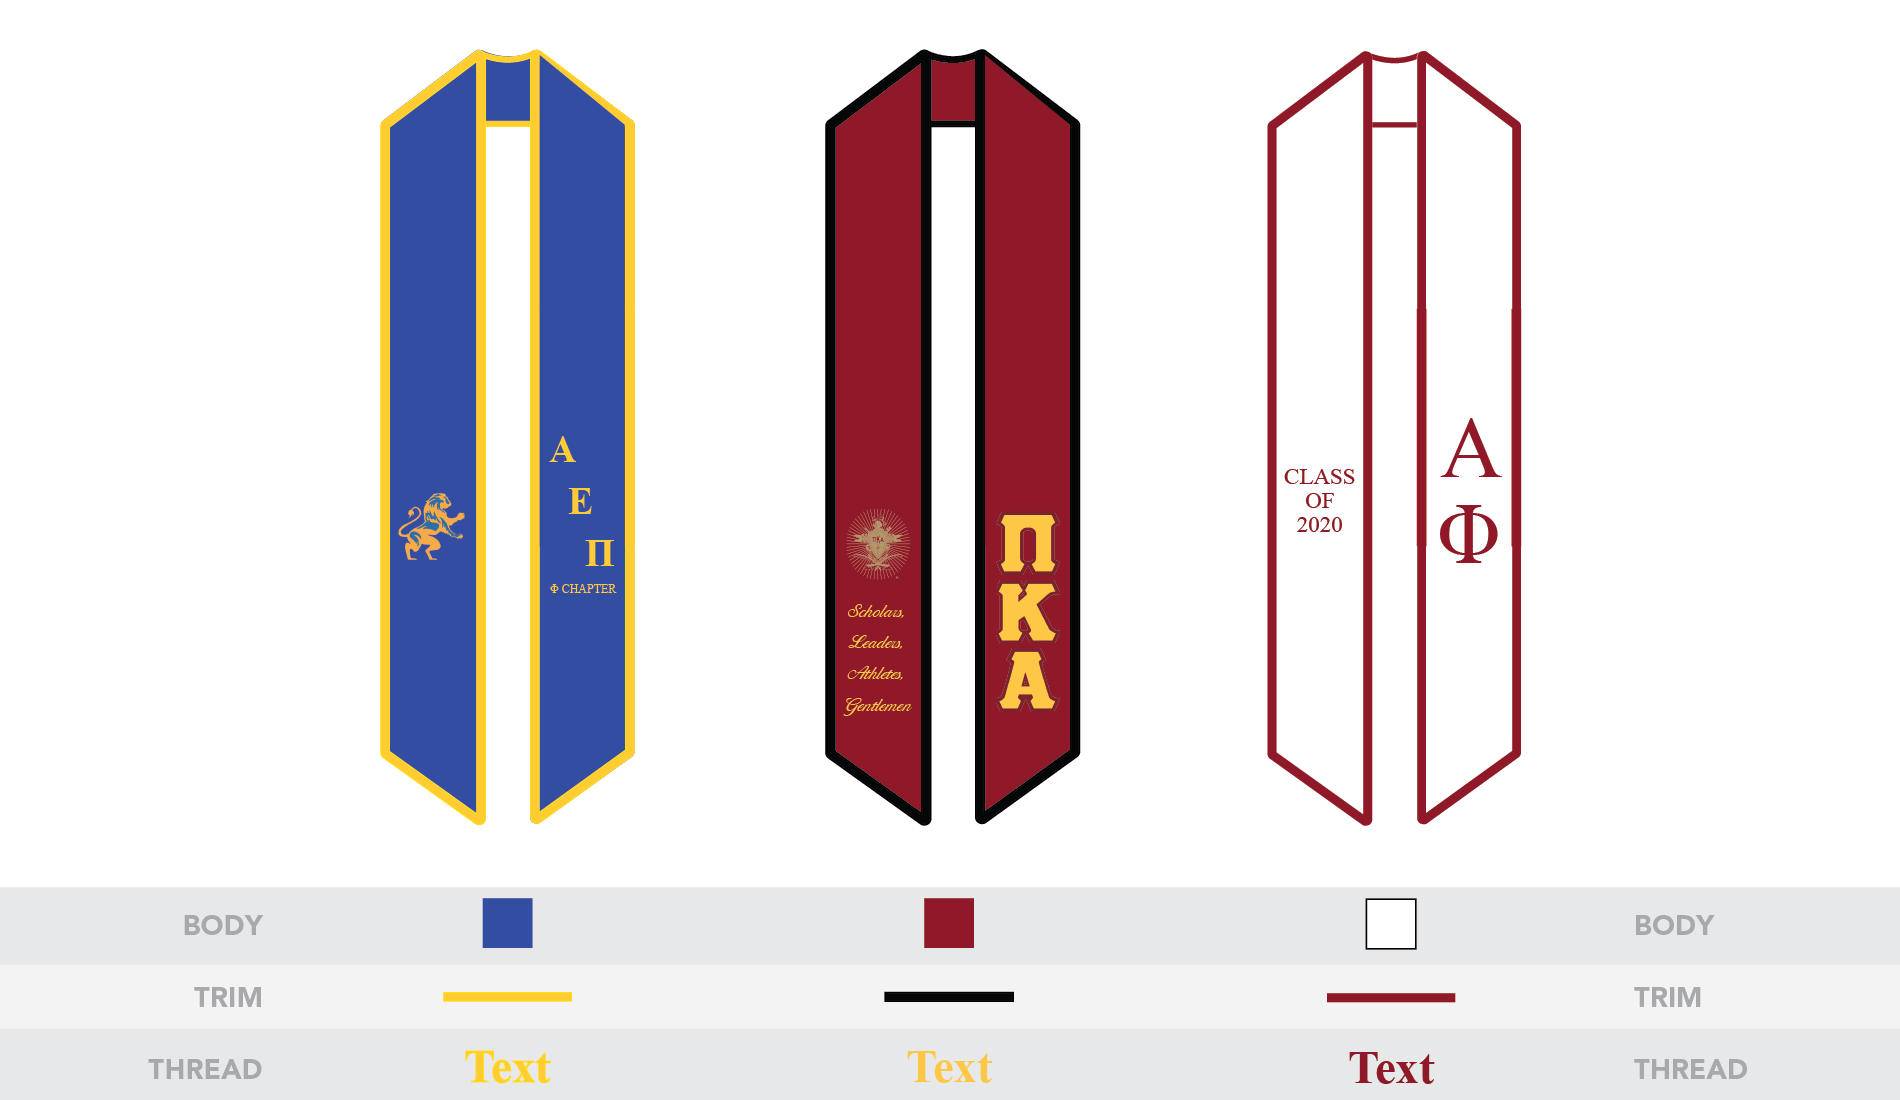 custom fraternity or sorority graduation stole or sash